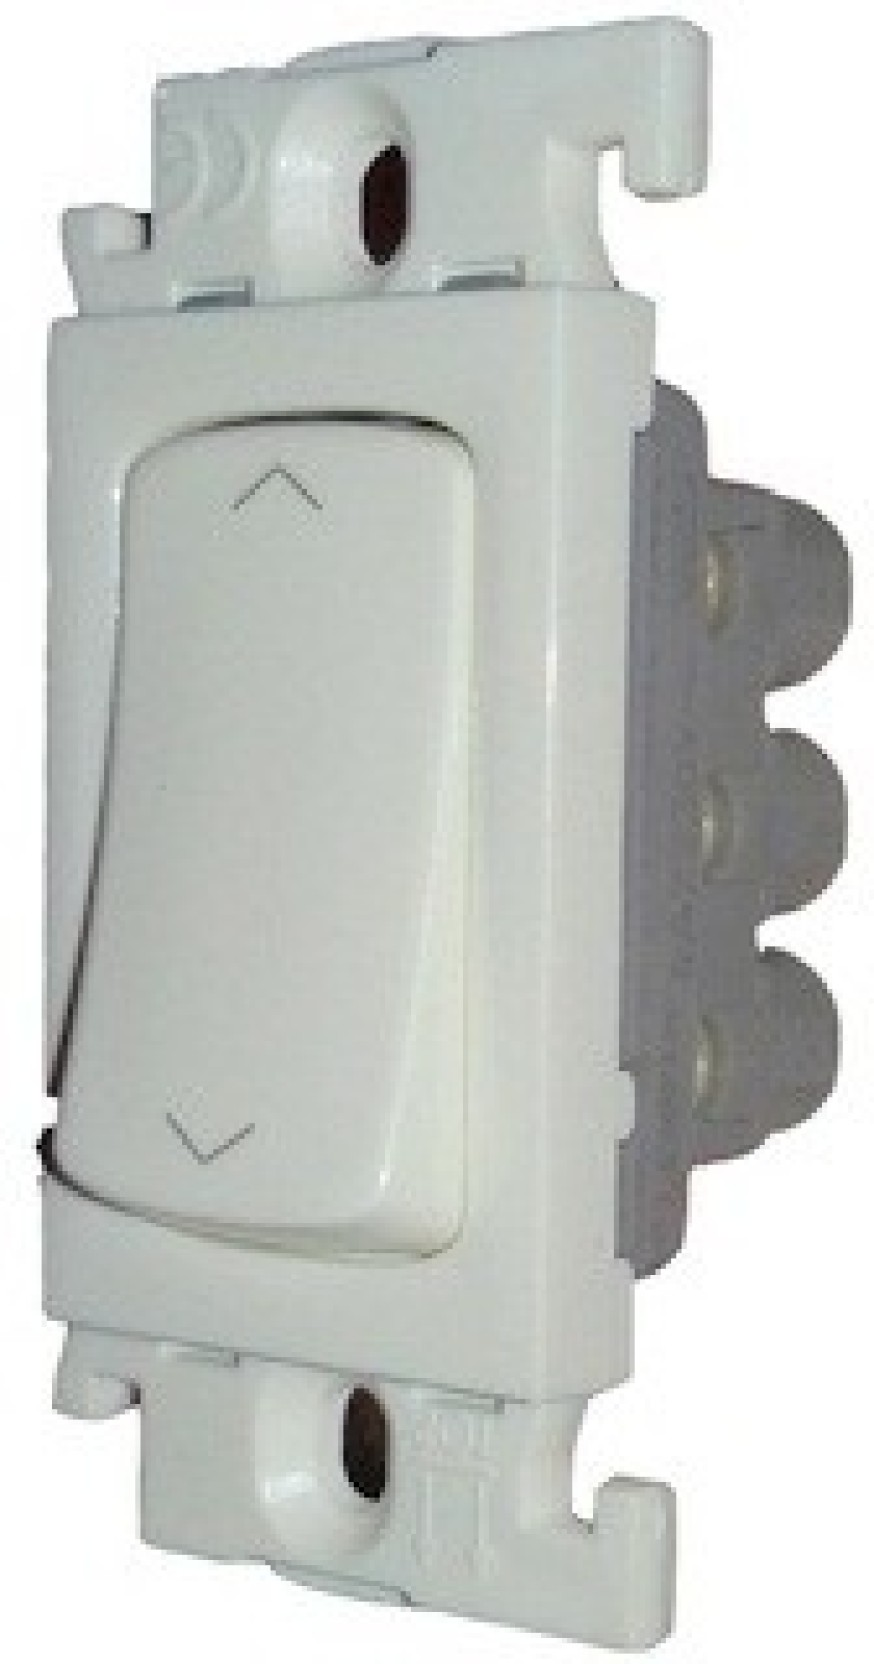 Legrand Legrand Mylinc 675502 6A 2Way Switch 6 Two Way Electrical ...